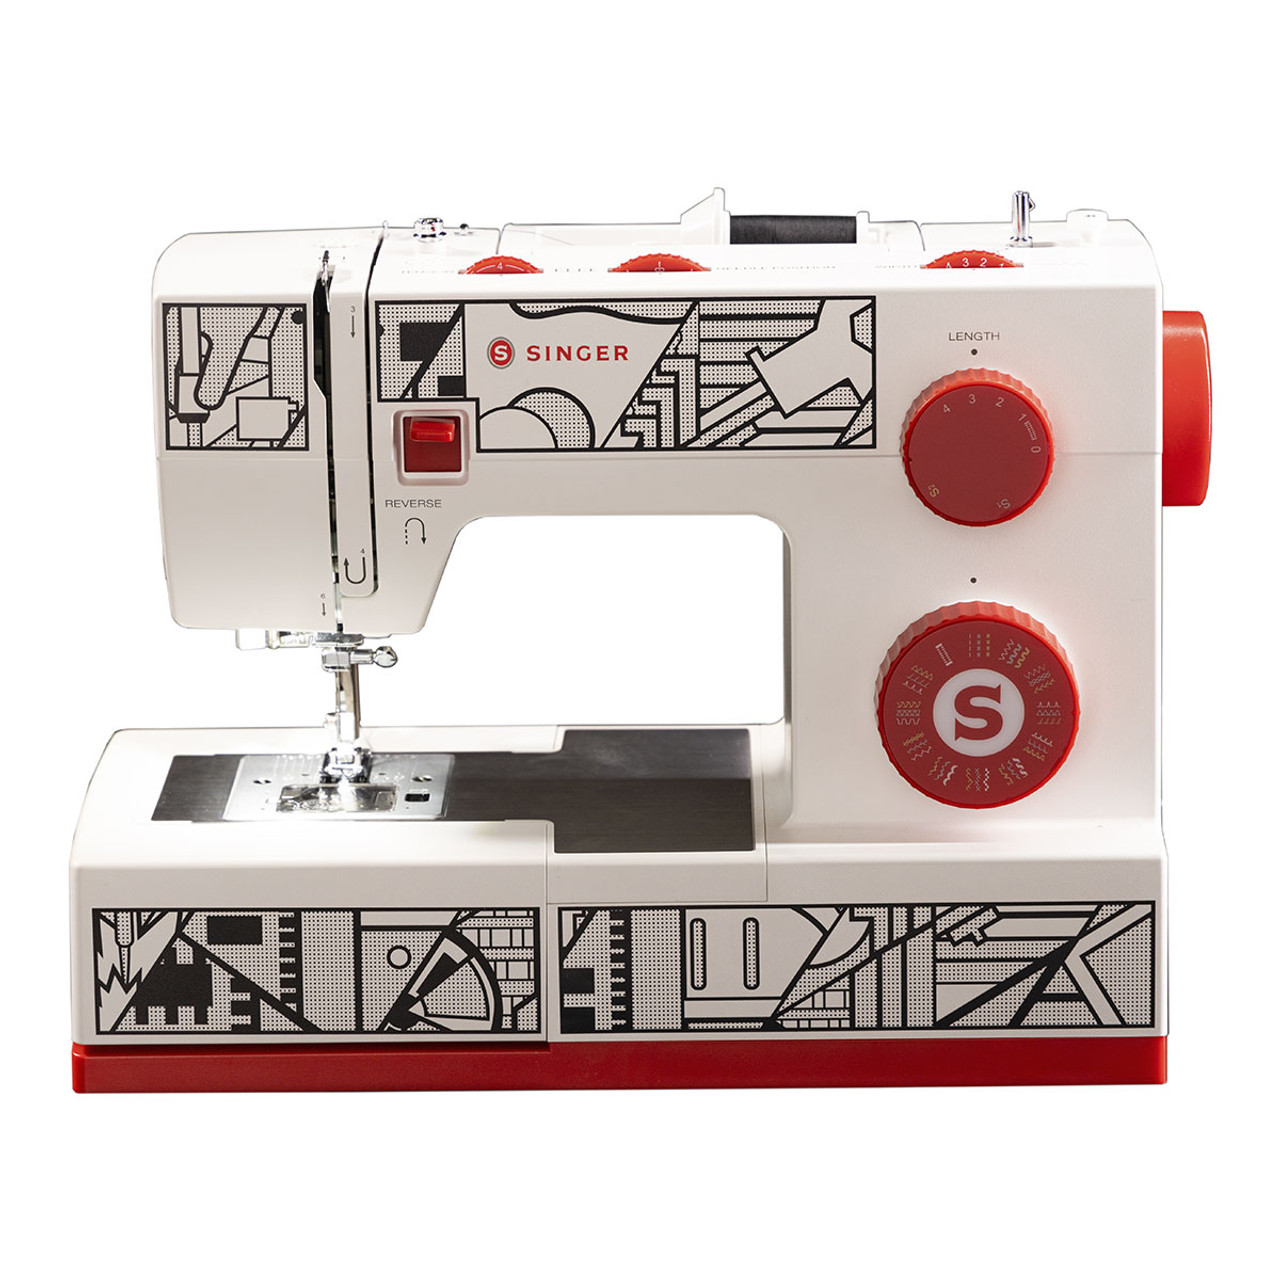 Singer Cosplay CP6355M Sewing Machine front view